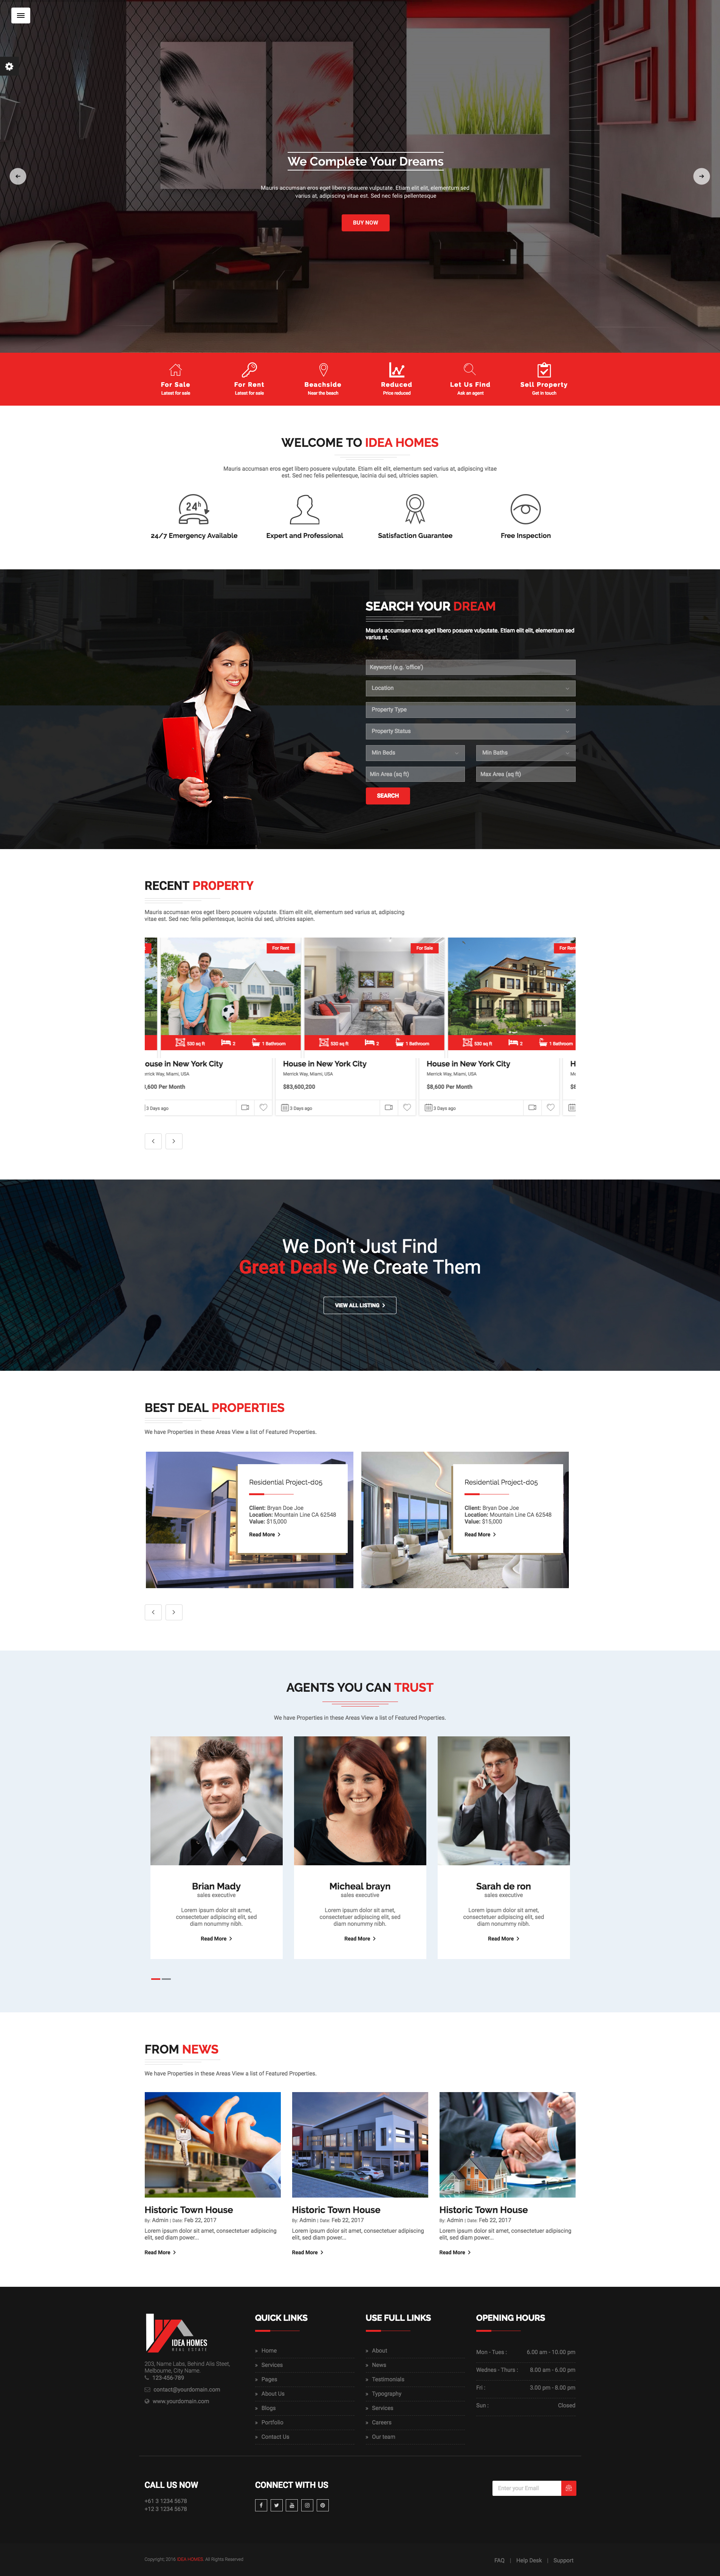 Idea Home Real Estate Bootstrap Template. It is best suited for Real ...